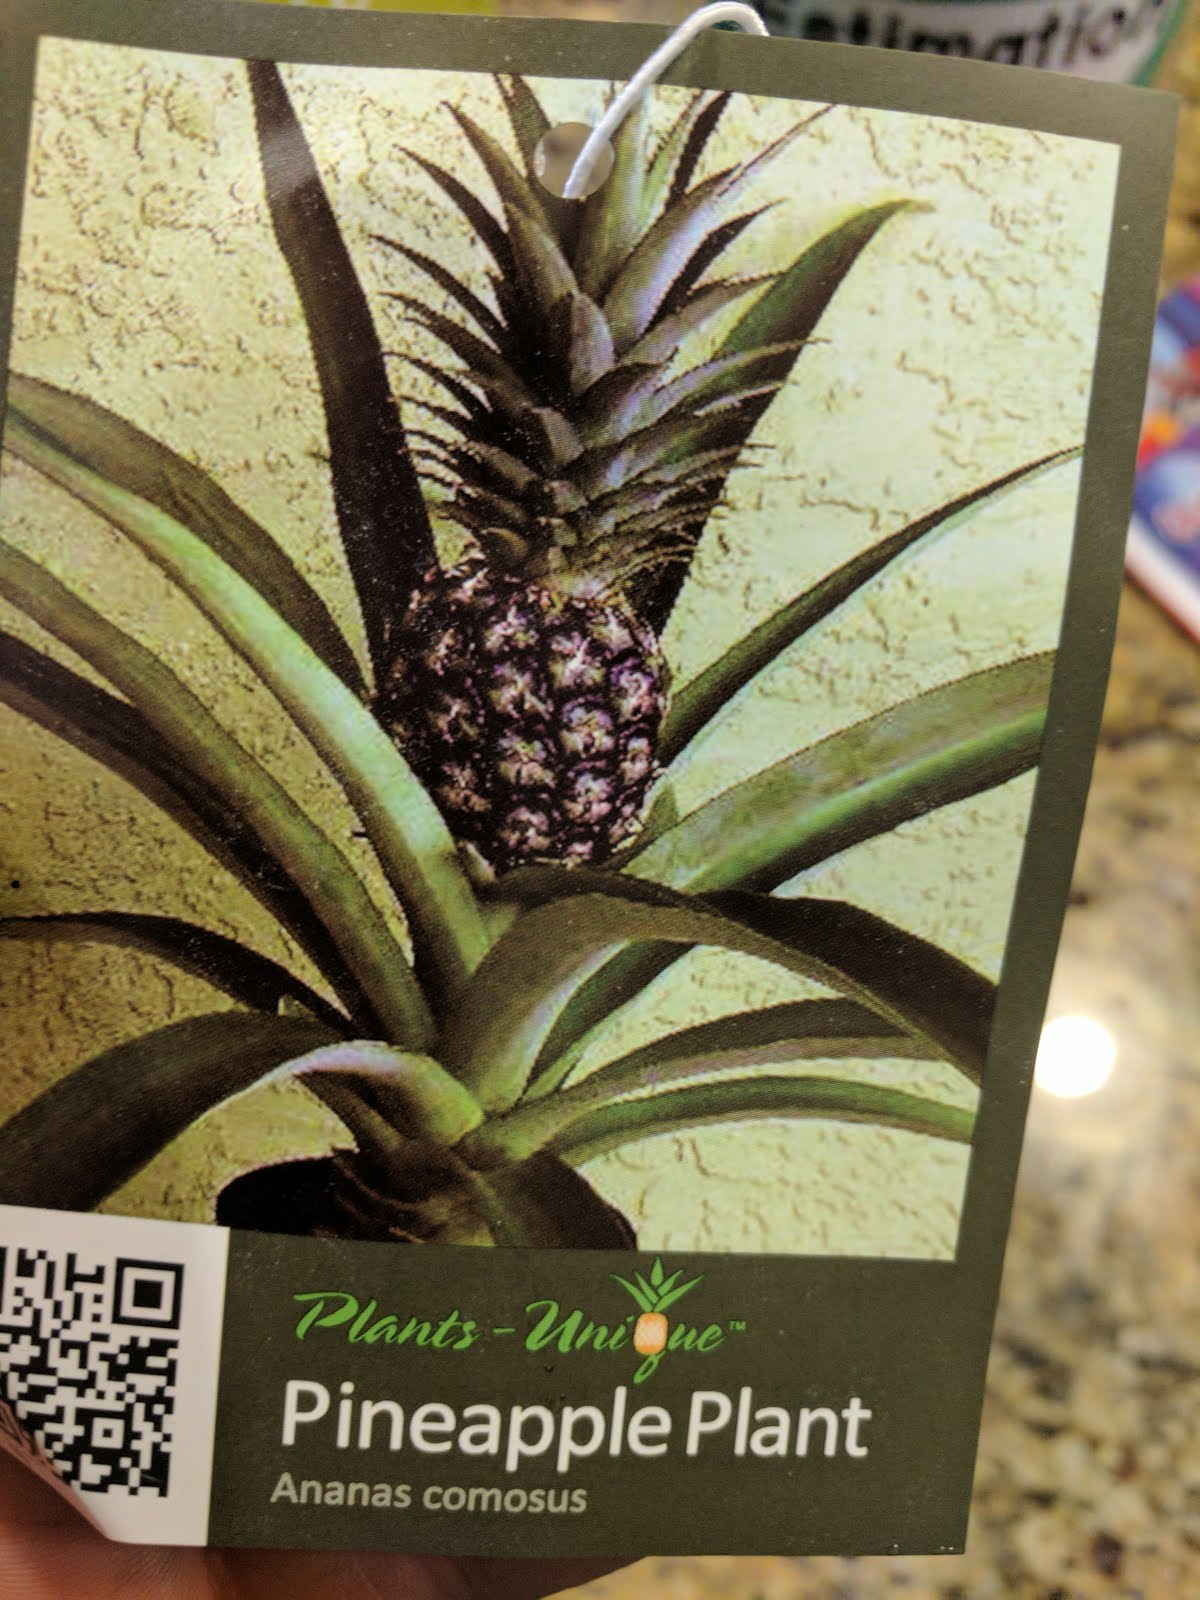 Growing A Pineapple Plant - Giving It A Try At Home